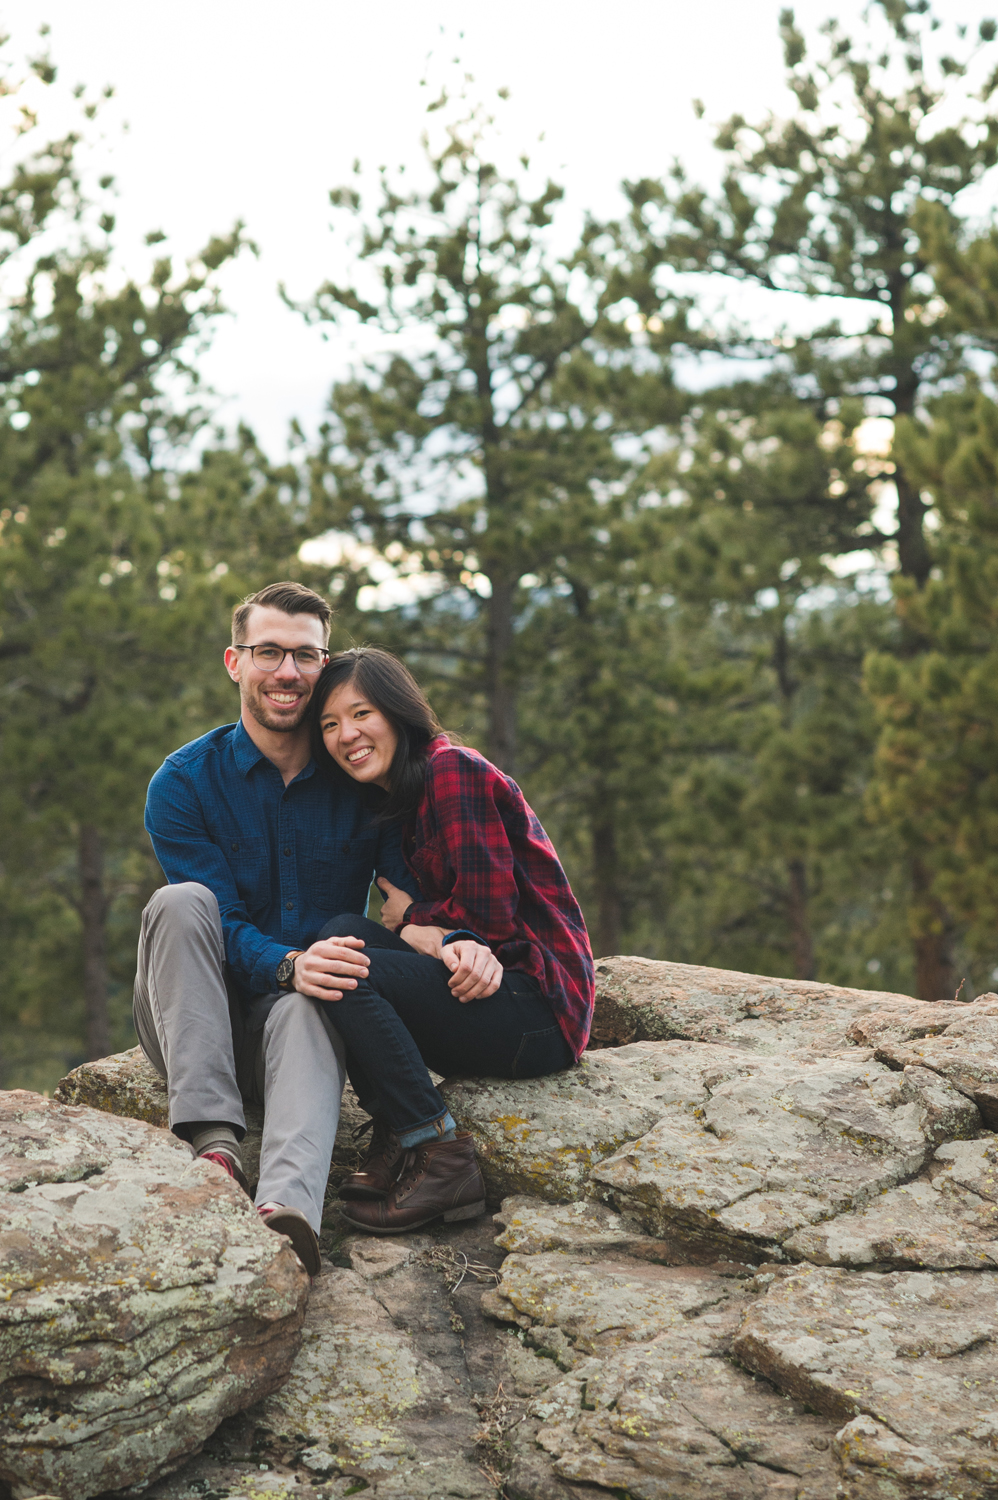 TiffanyandMark_Engaged_1026_squarespace.jpg